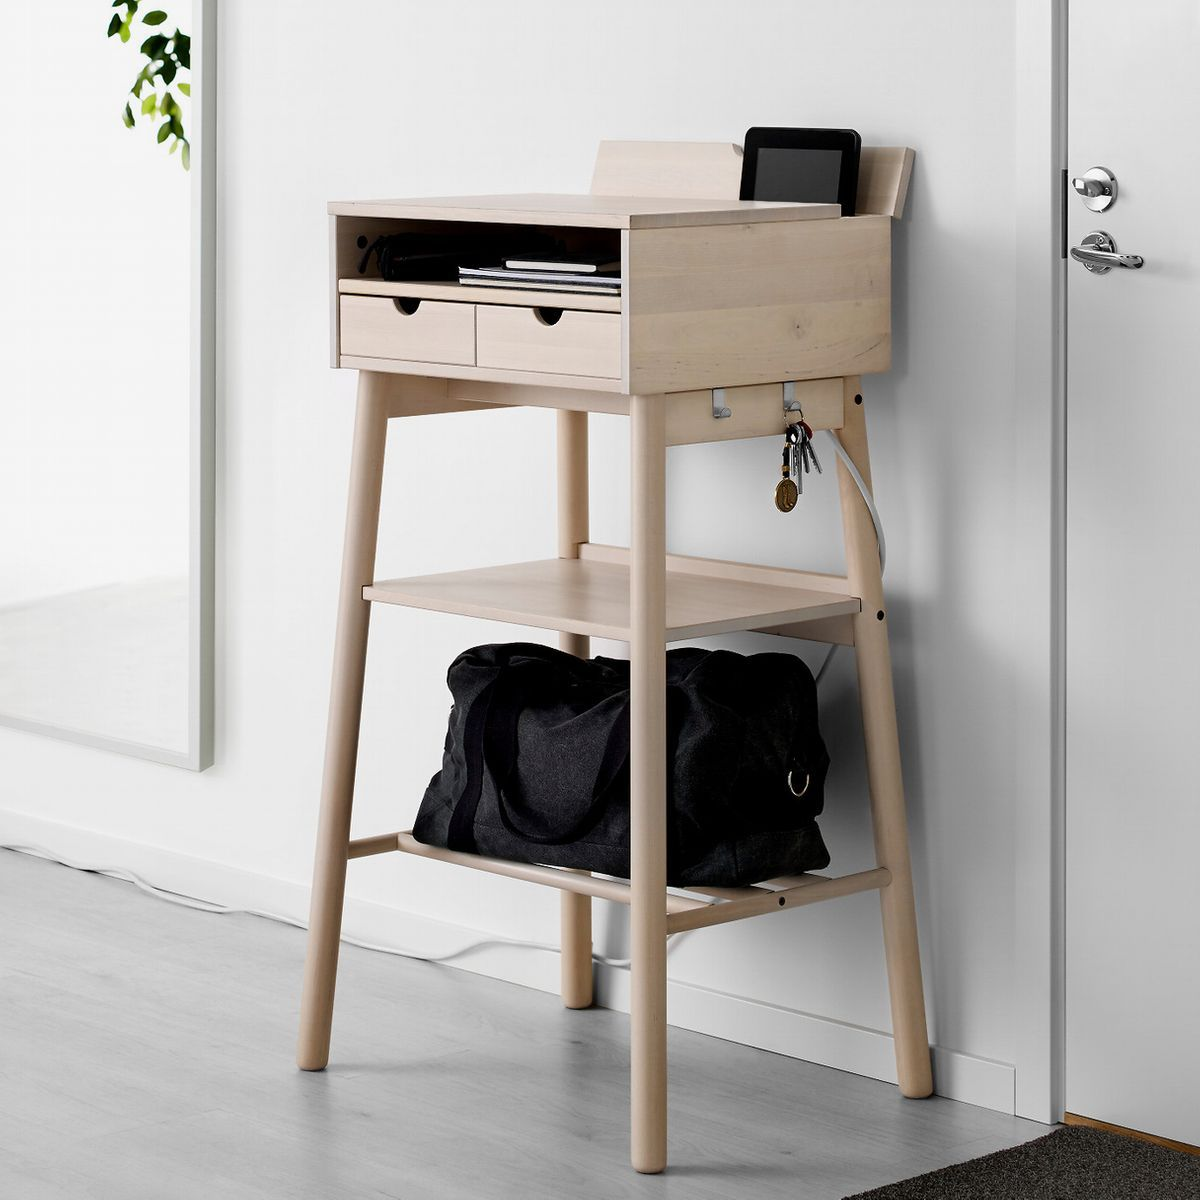 Light wood standing desk with two shelves underneath.